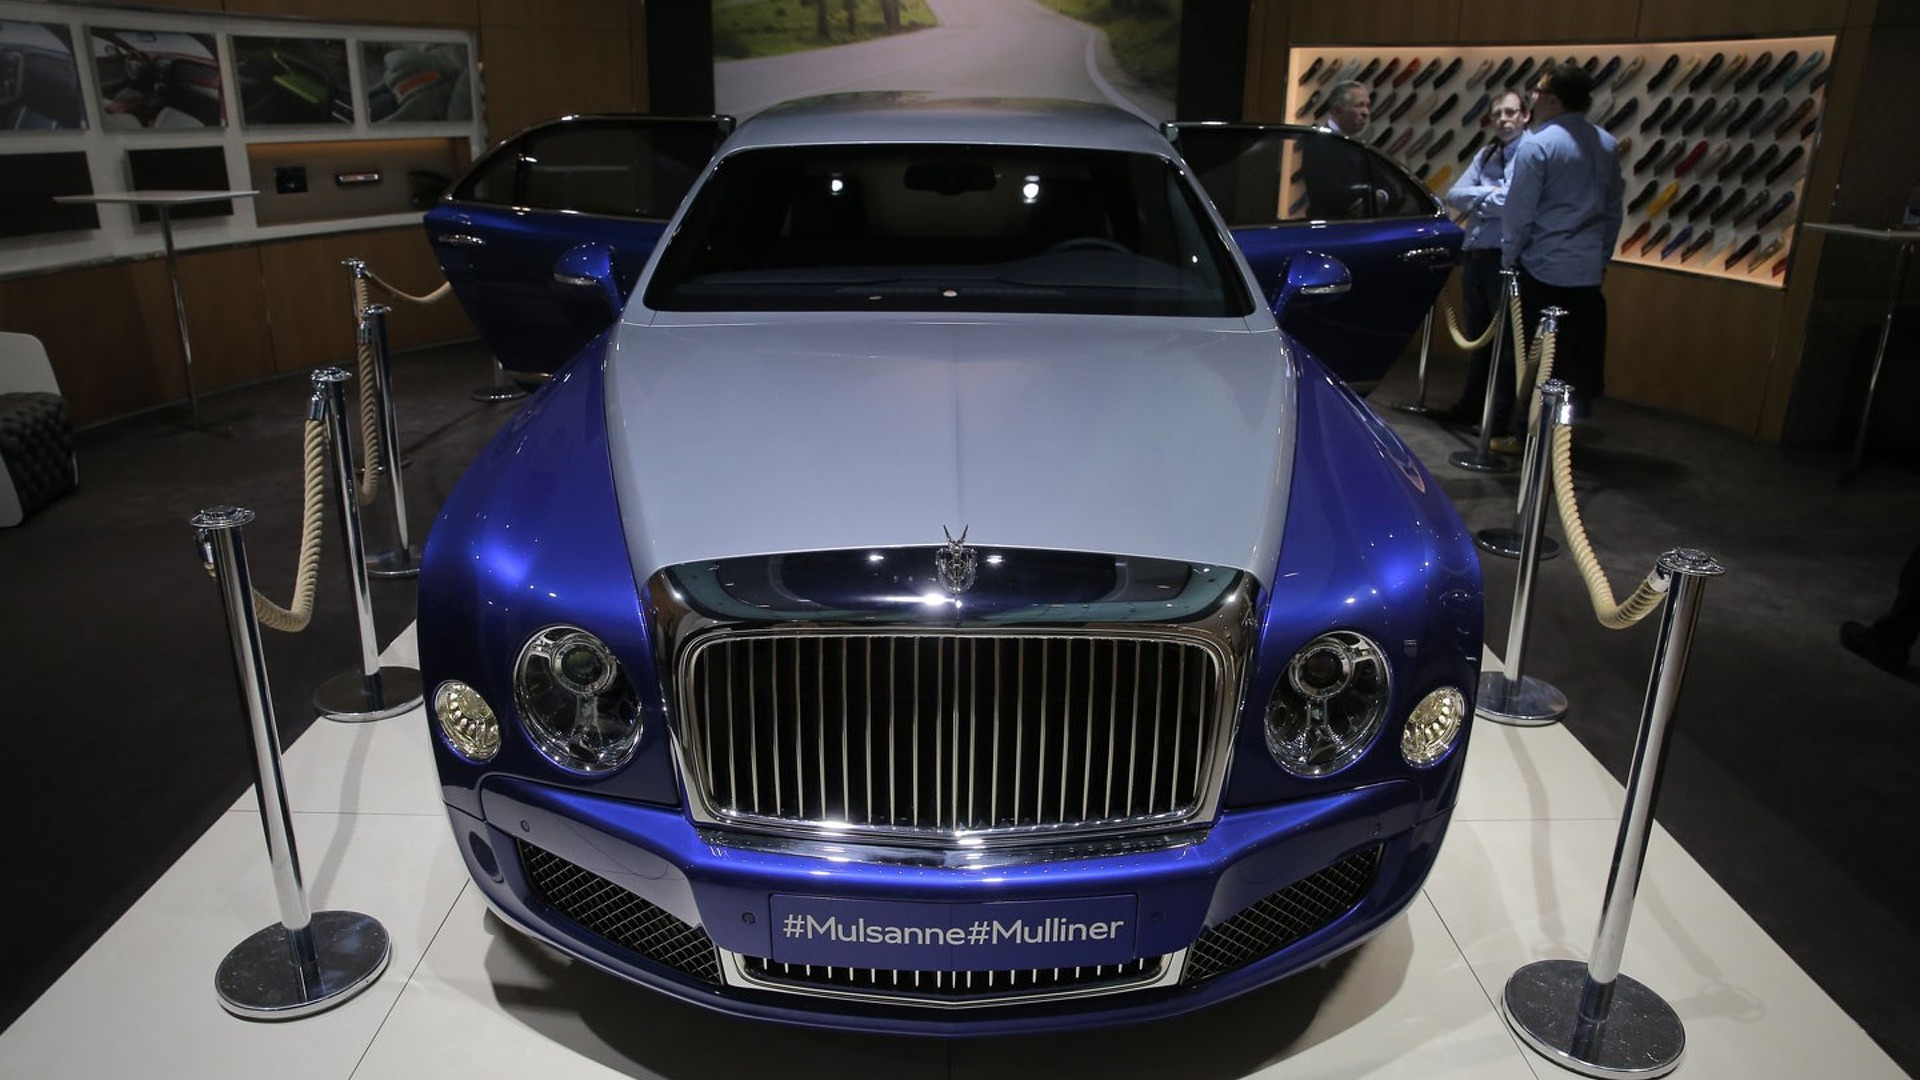 added this notoriousluxury into beauty by mulliner its bentley dimensions retains the architecture limousine cleverly built crafted custom resplendent are mulsanne as a saloon grand